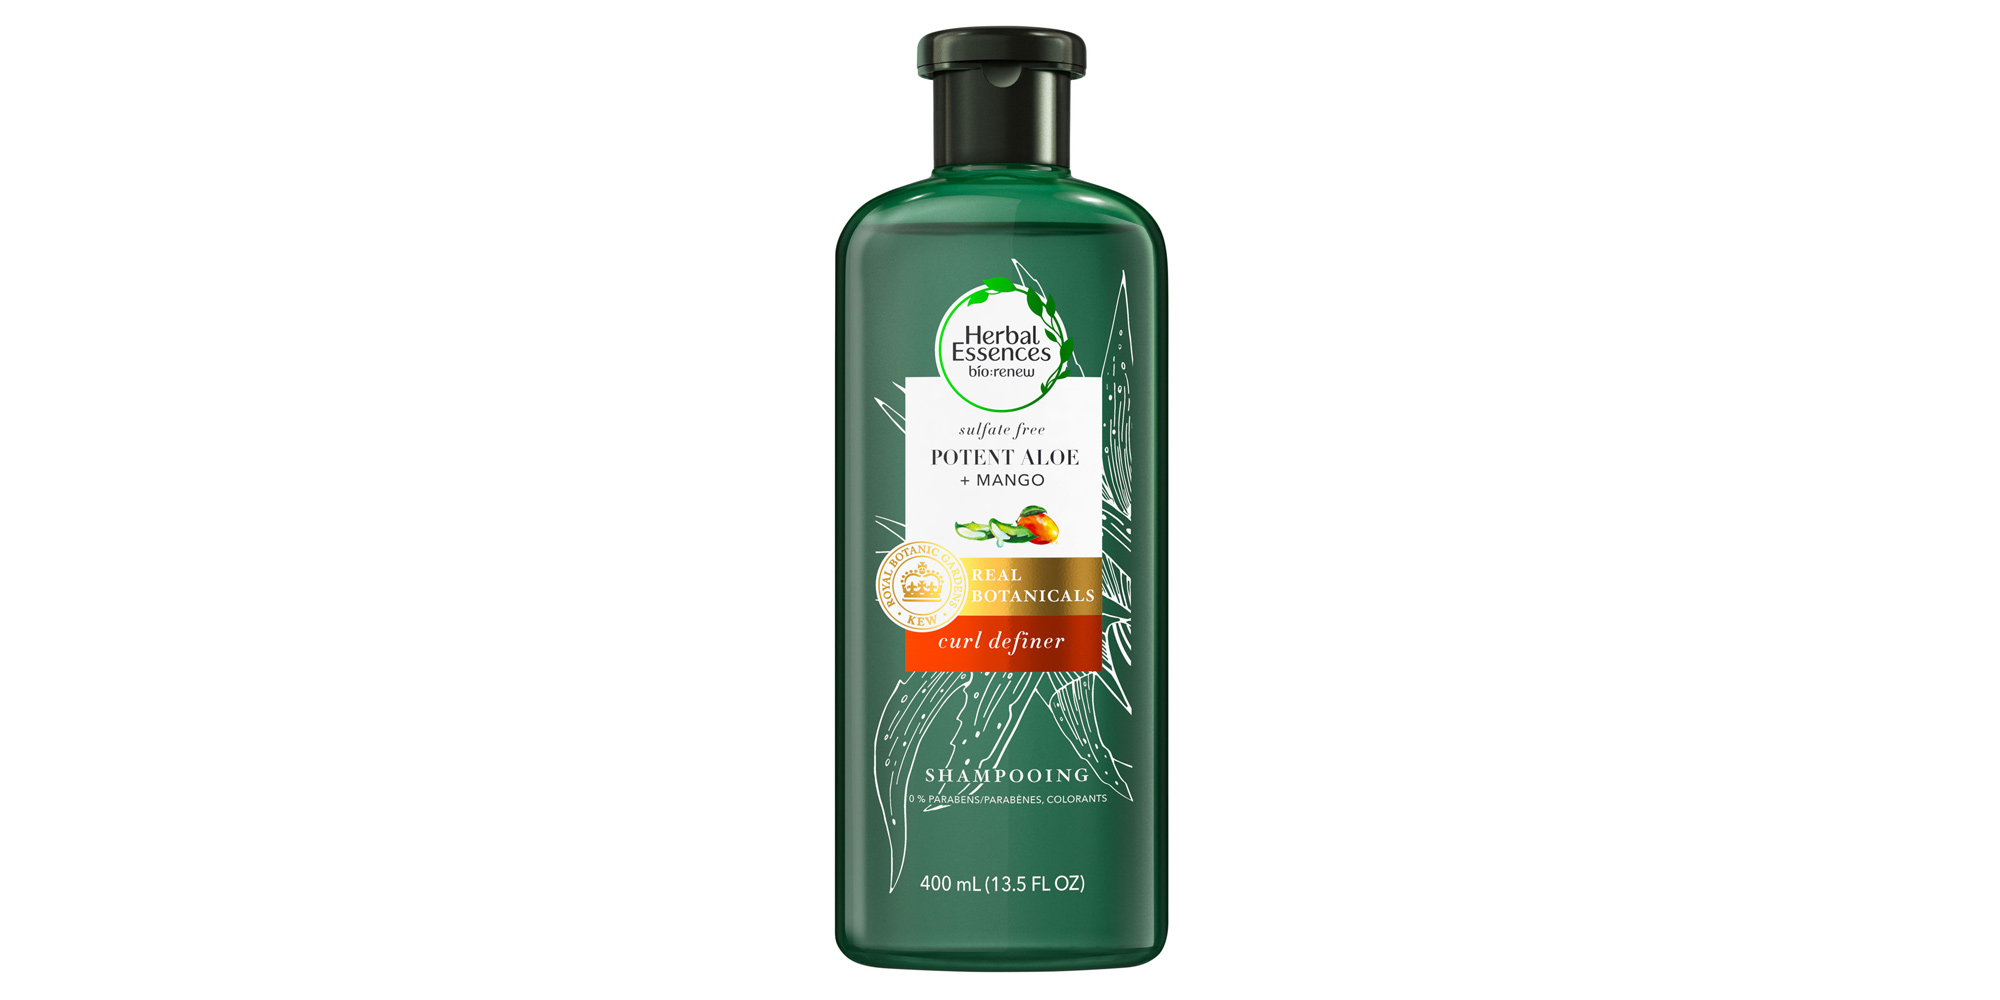 Herbal Essences Potent Aloe + Mango Shampoo